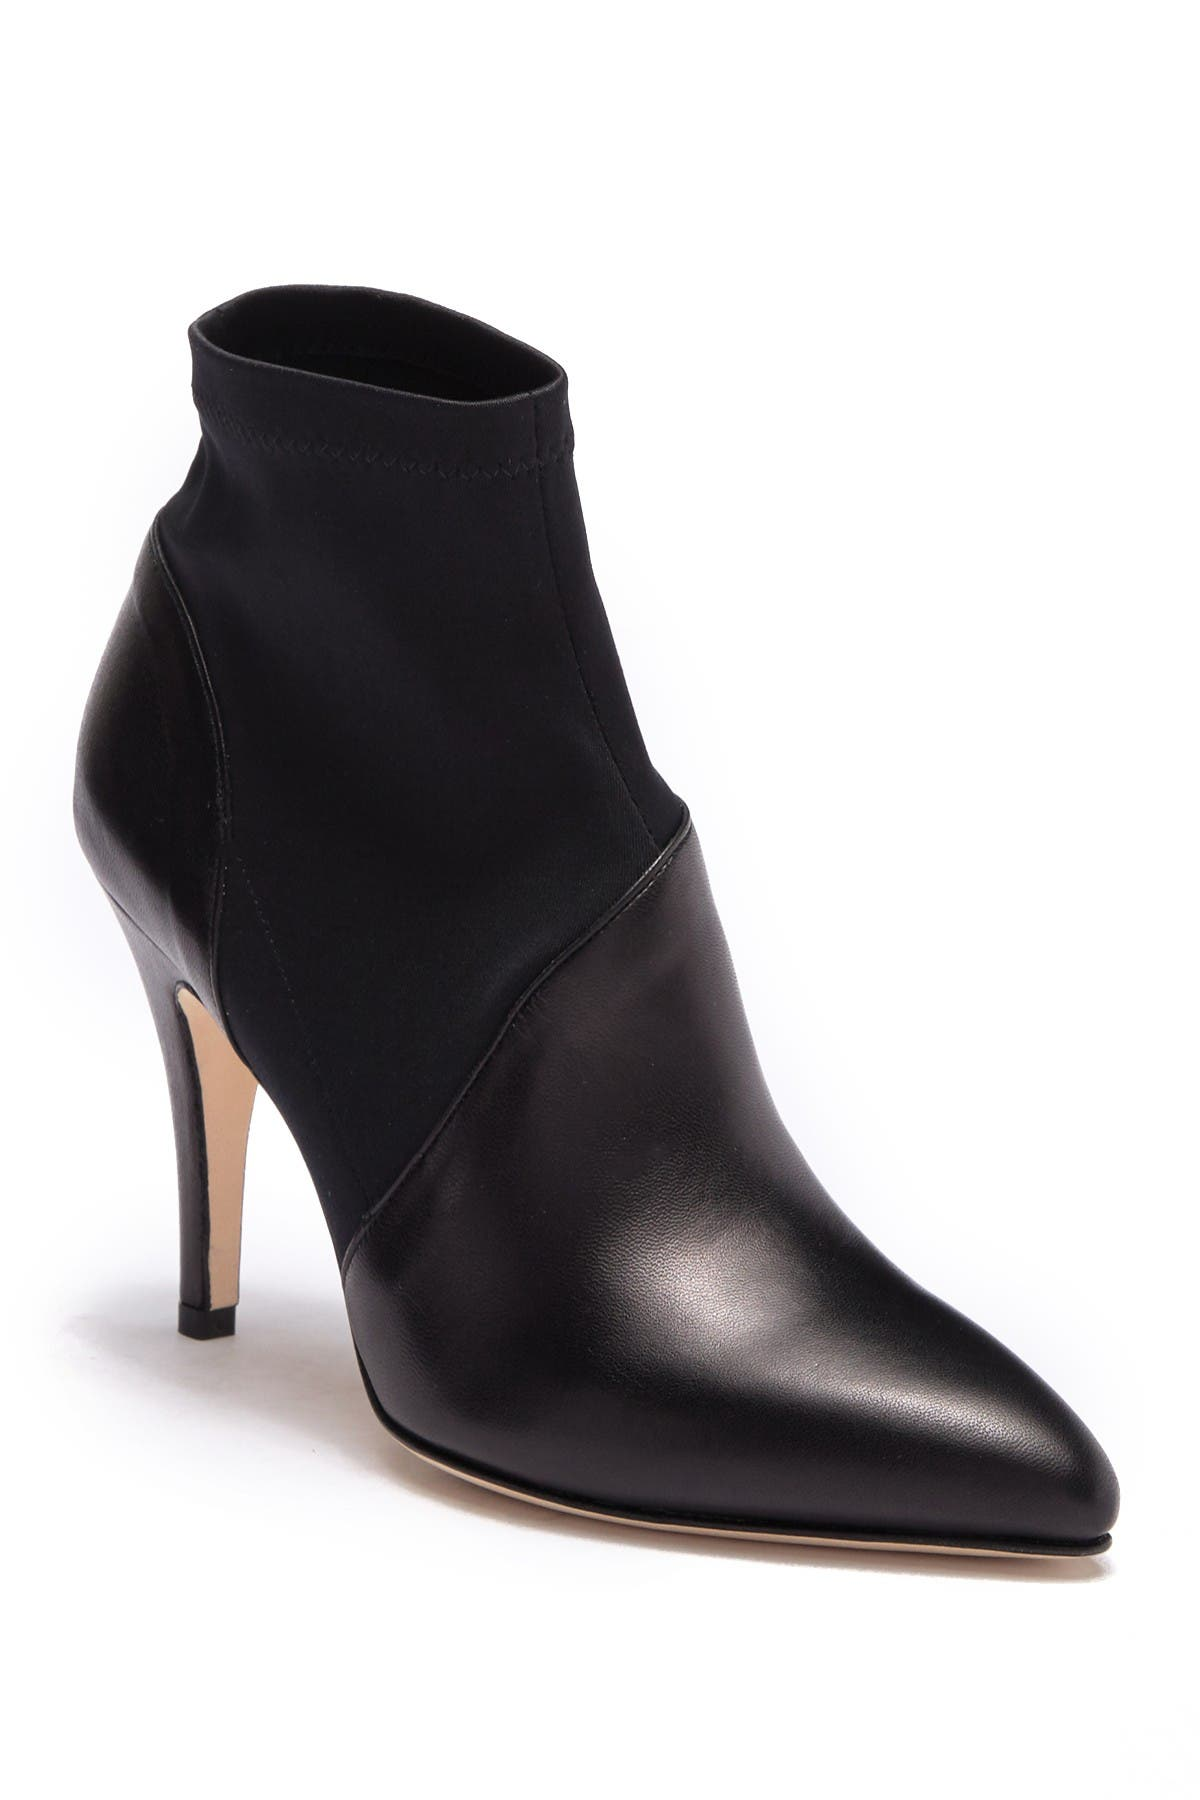 Image of Bettye Muller Gidget Leather Stretch Bootie